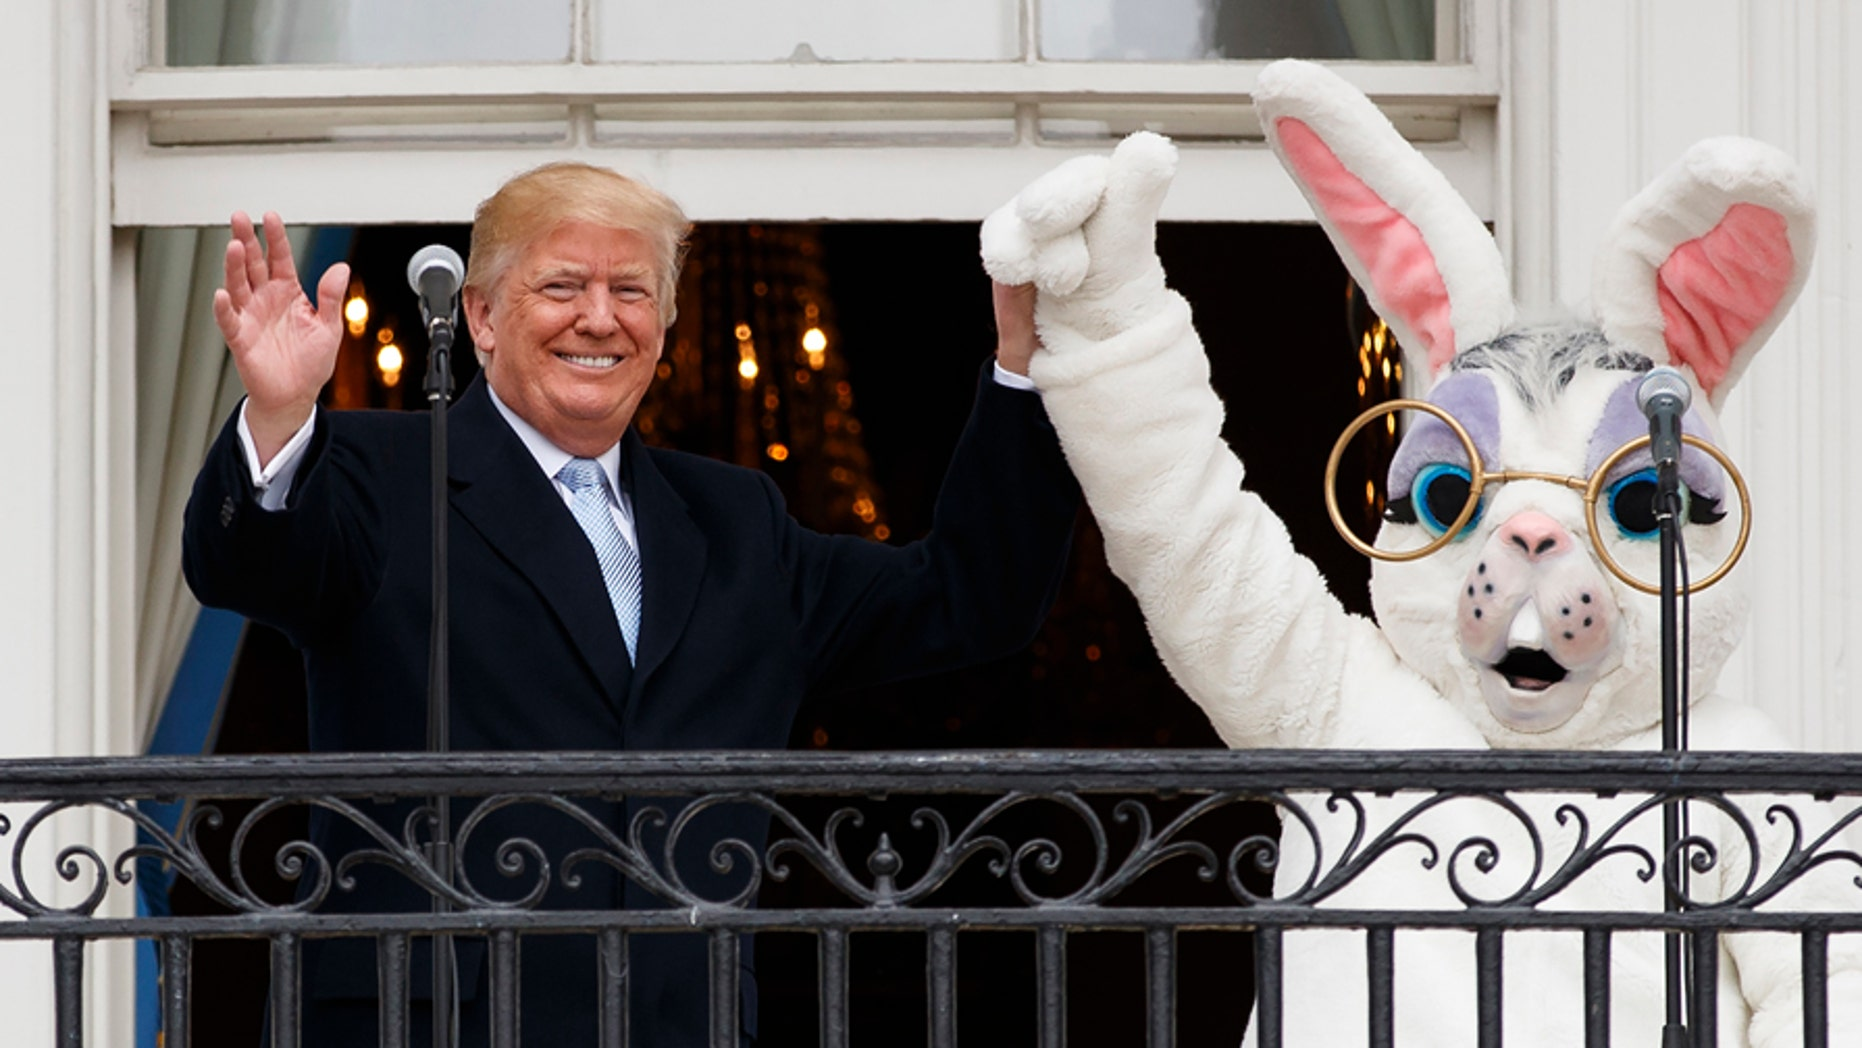 President Donald Trump holds hands with the Easter Bunny on the Truman Balcony of the White House in Washington, Monday, April 2, 2018, during the annual White House Easter Egg Roll. (AP Photo/Carolyn Kaster)